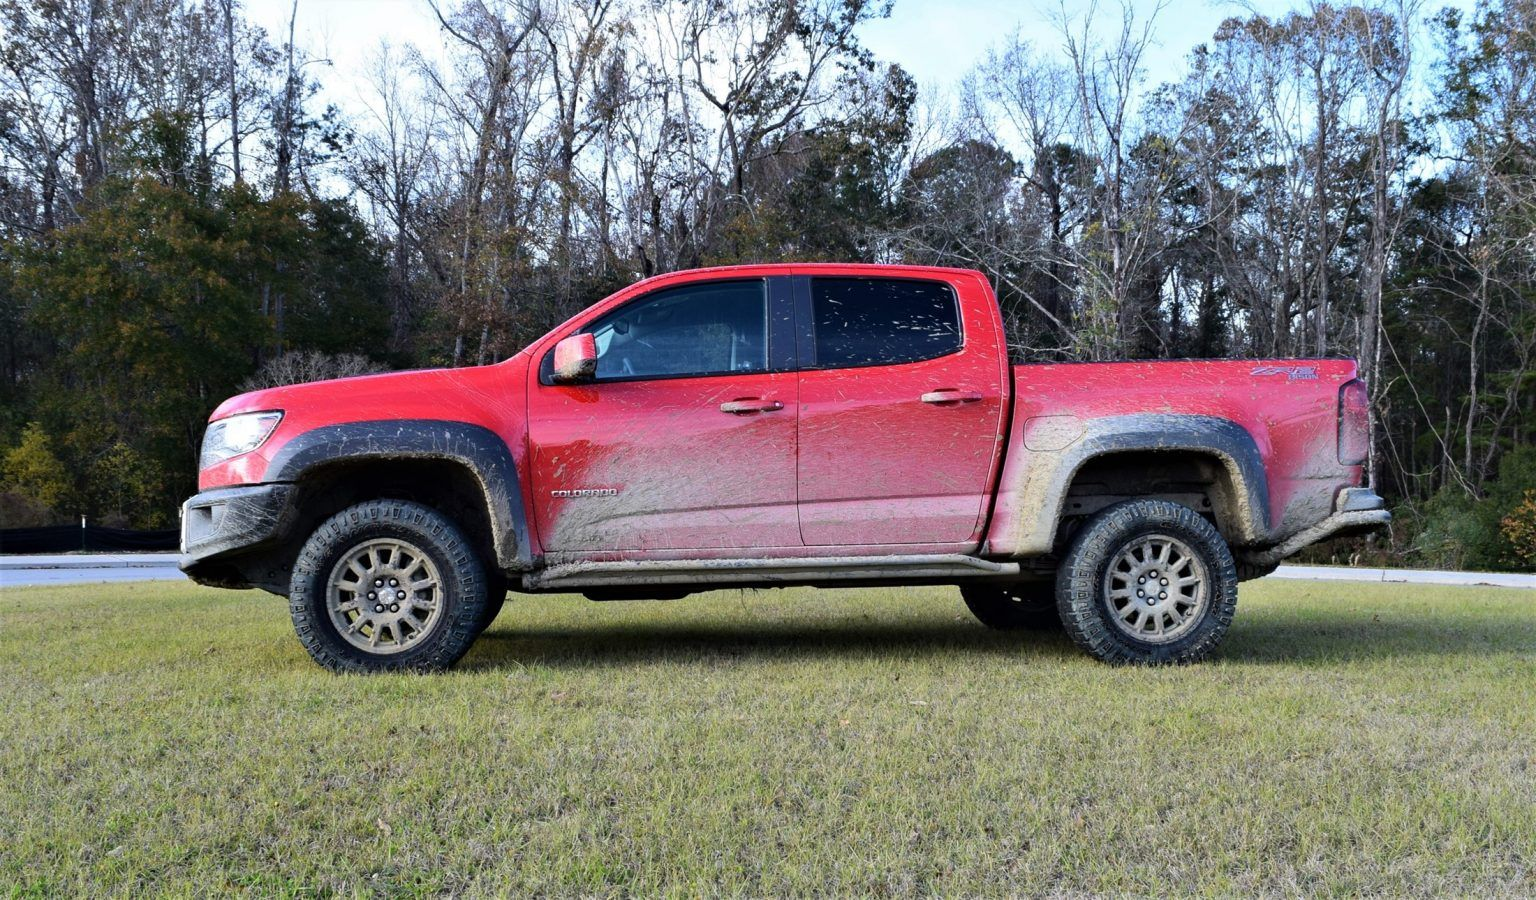 2020 Chevrolet Colorado Zr2 Bison Duramax Diesel Review 10 Chevrolet Colorado Duramax Duramax Diesel